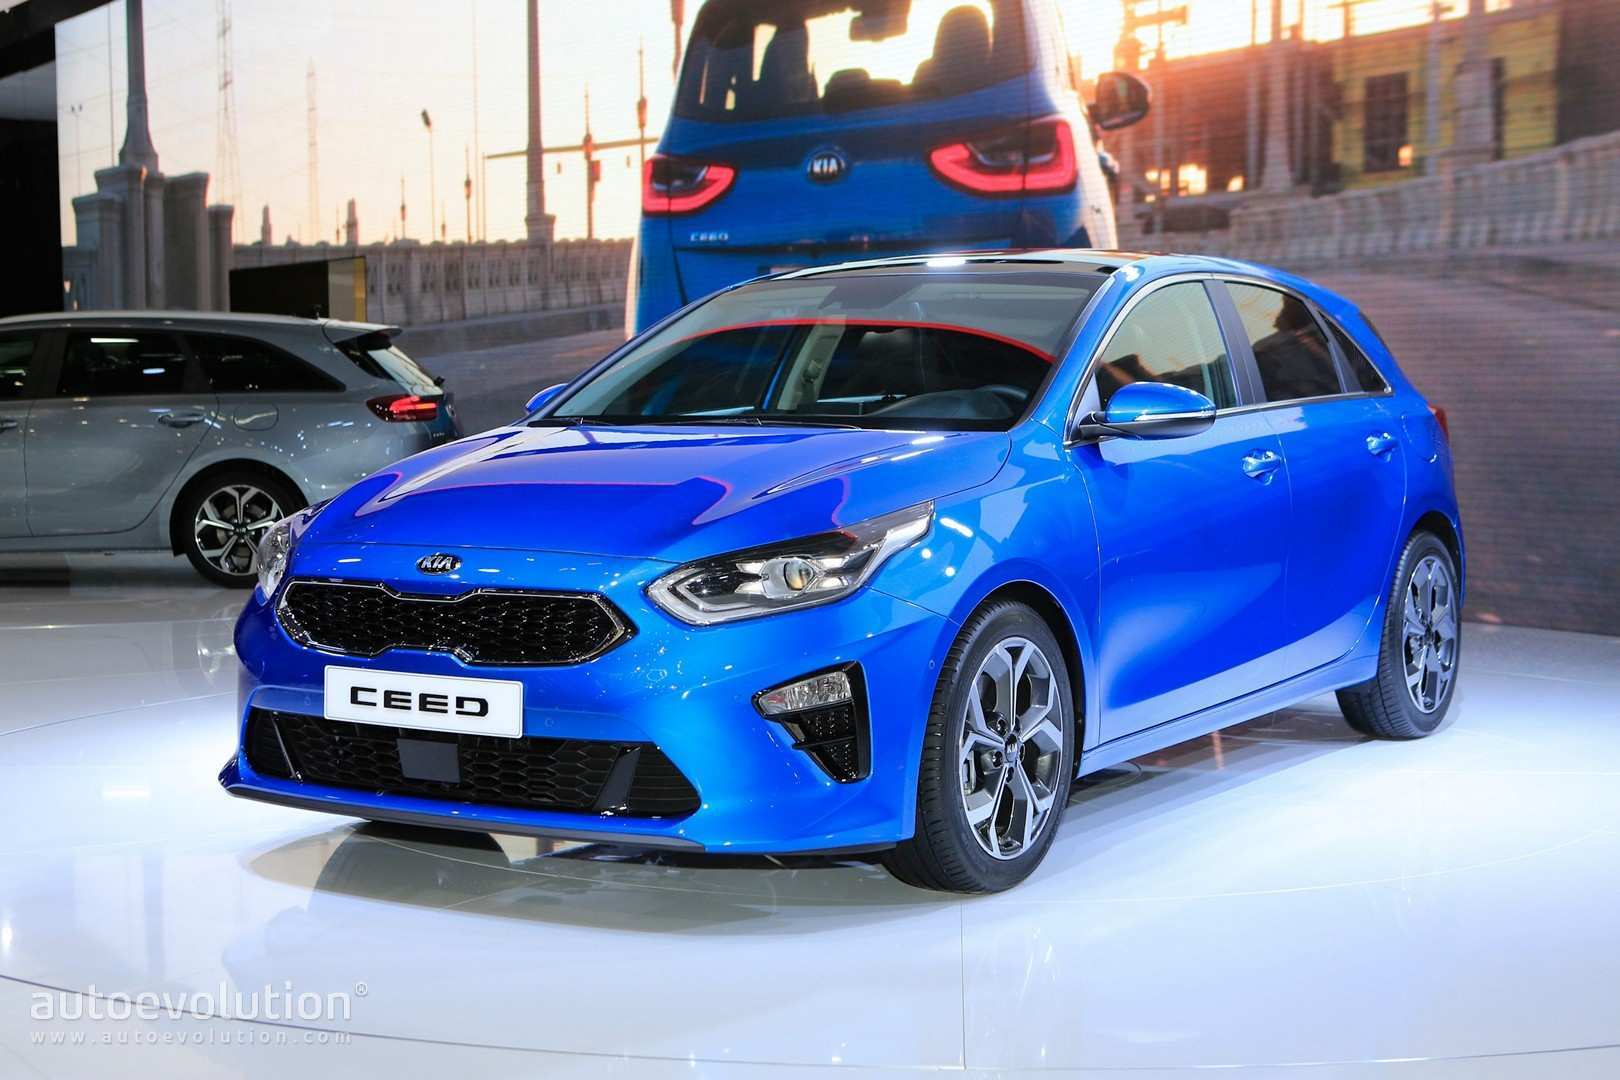 61 Great 2019 Kia Hatchback Prices by 2019 Kia Hatchback